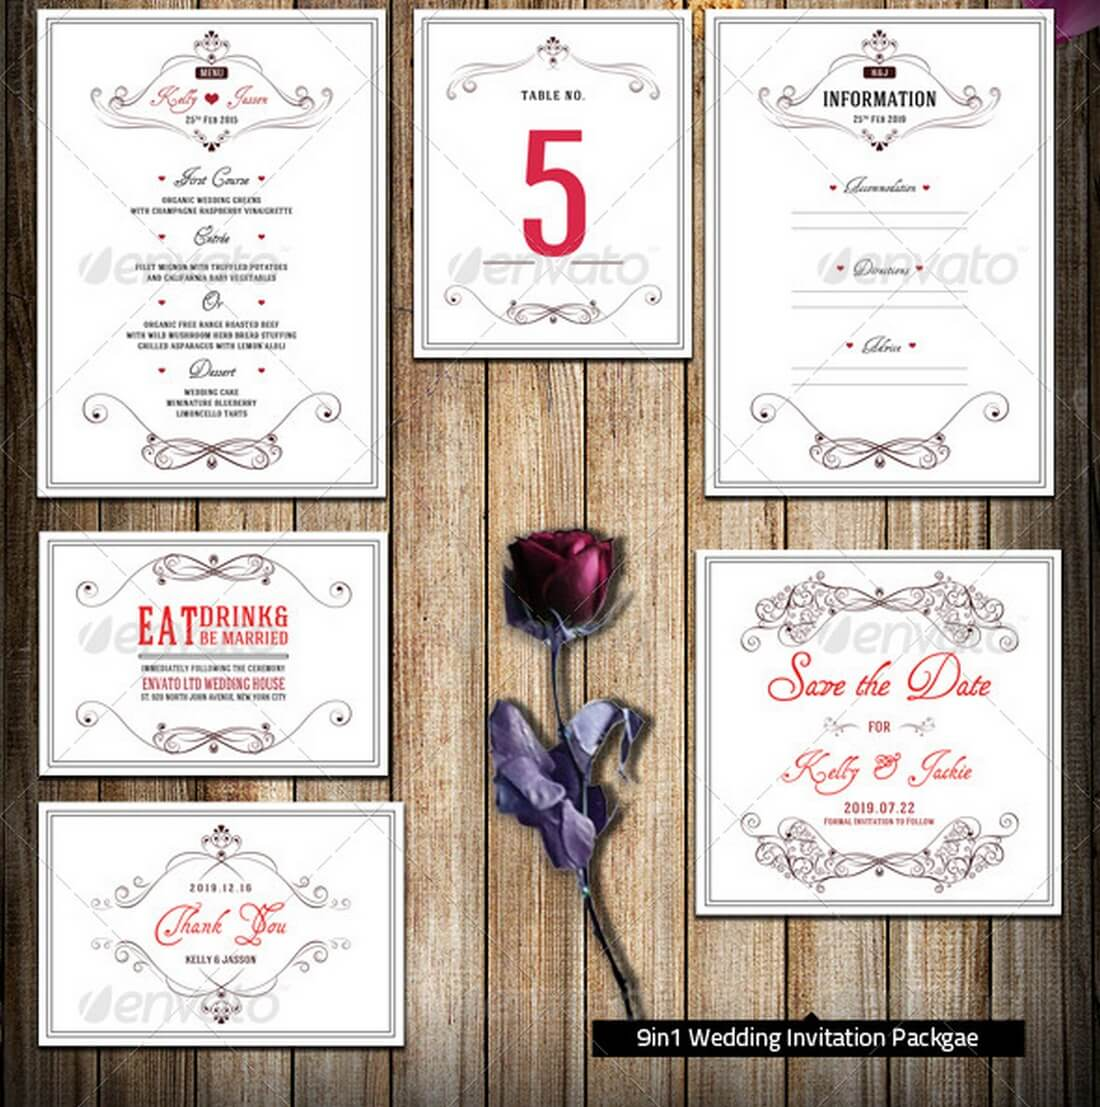 15 Gorgeous Save the Date Templates – Wedding Save the Date and Invitation Packages